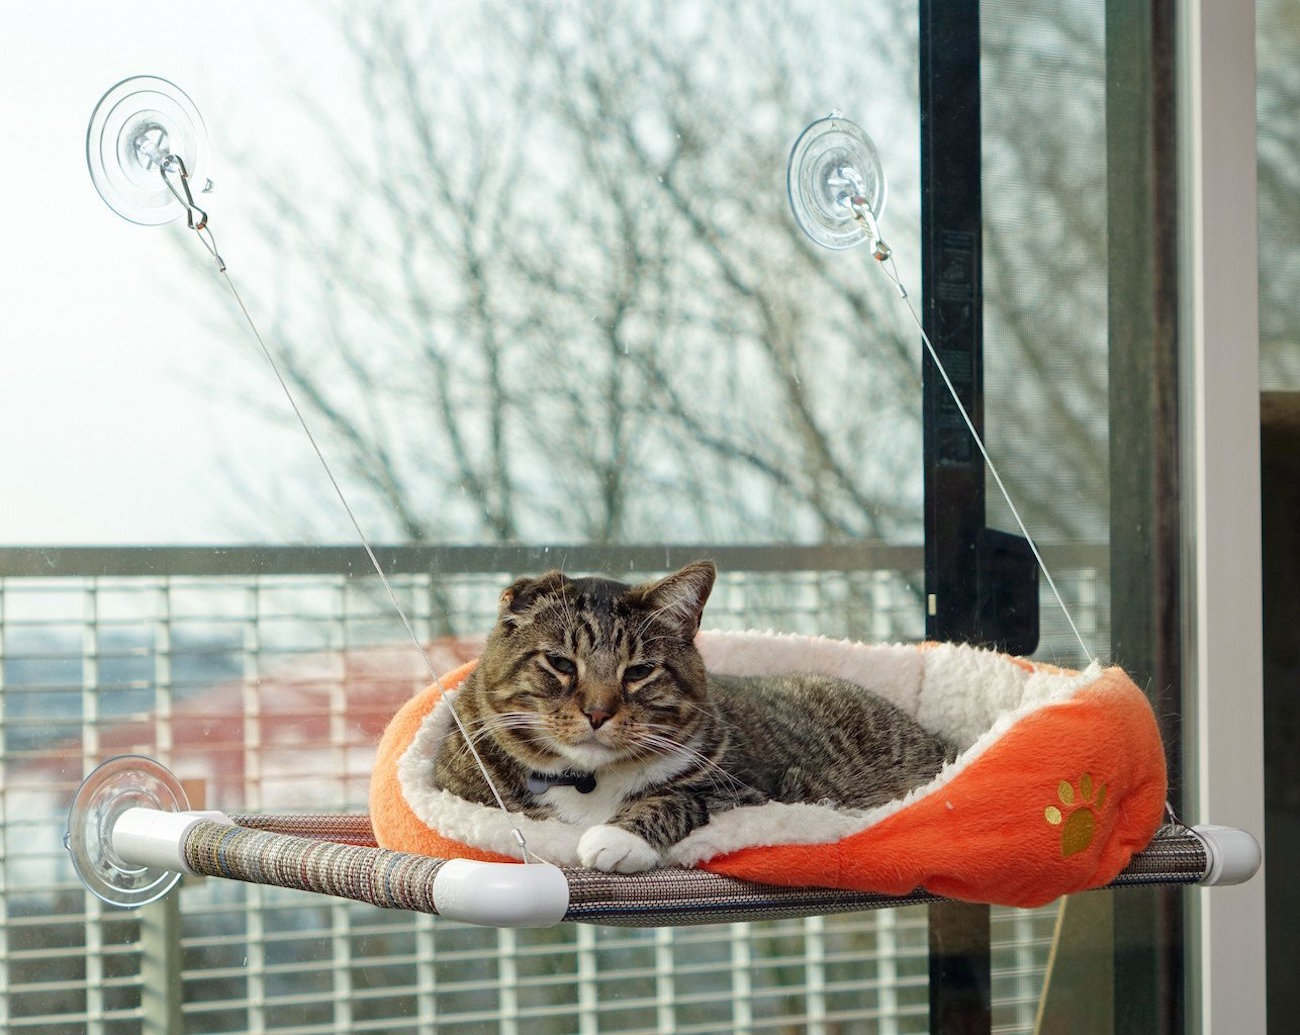 Kitty Cot – The World's Best Cat Perch